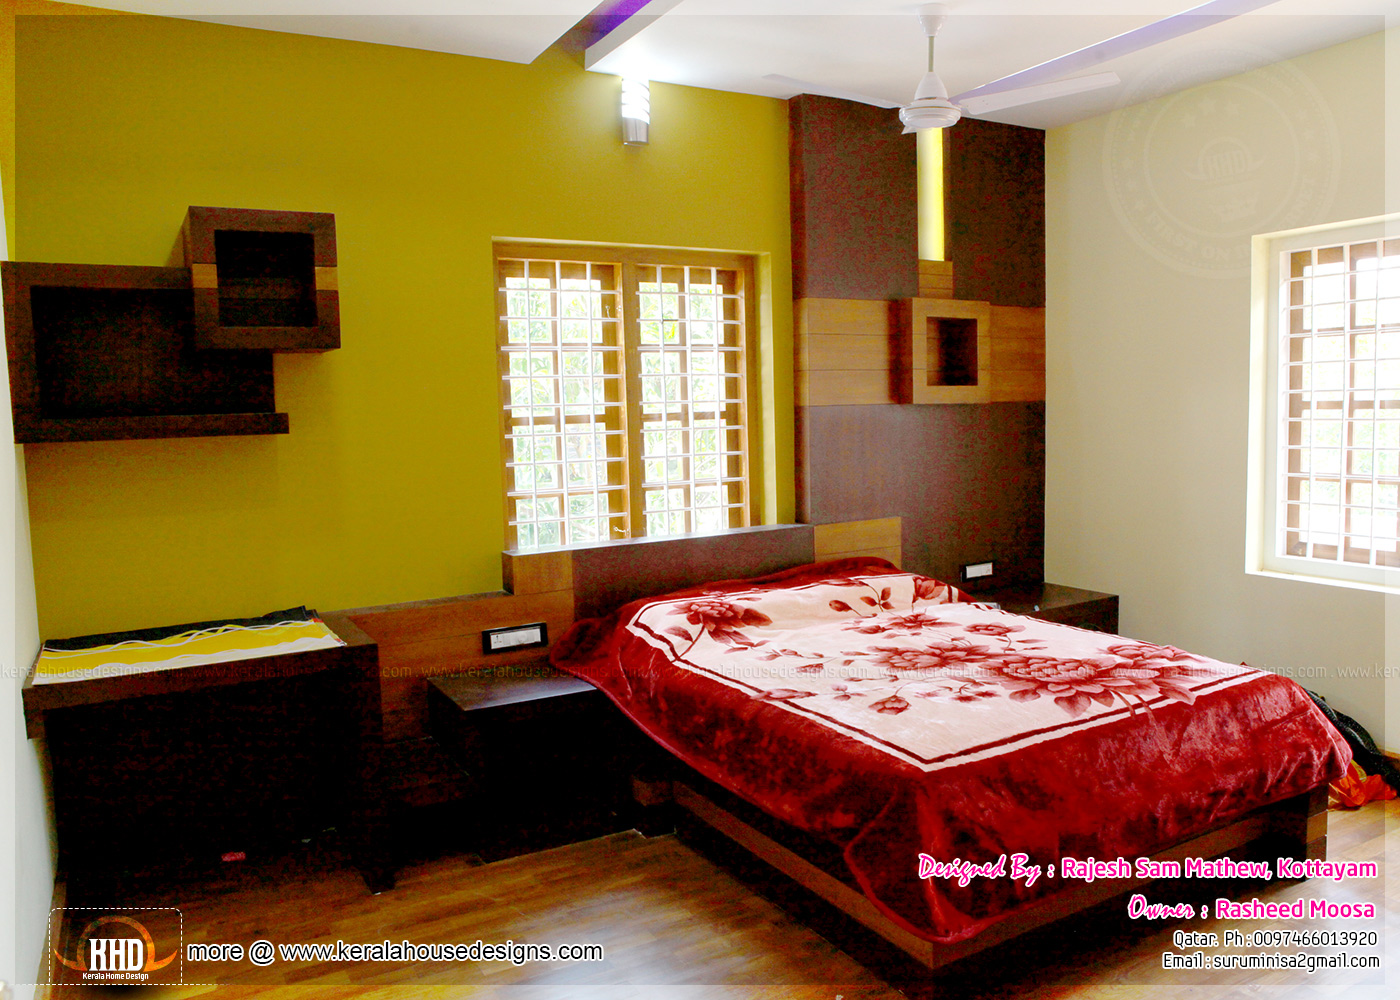 Kerala interior design with photos kerala home design for Bed styles images